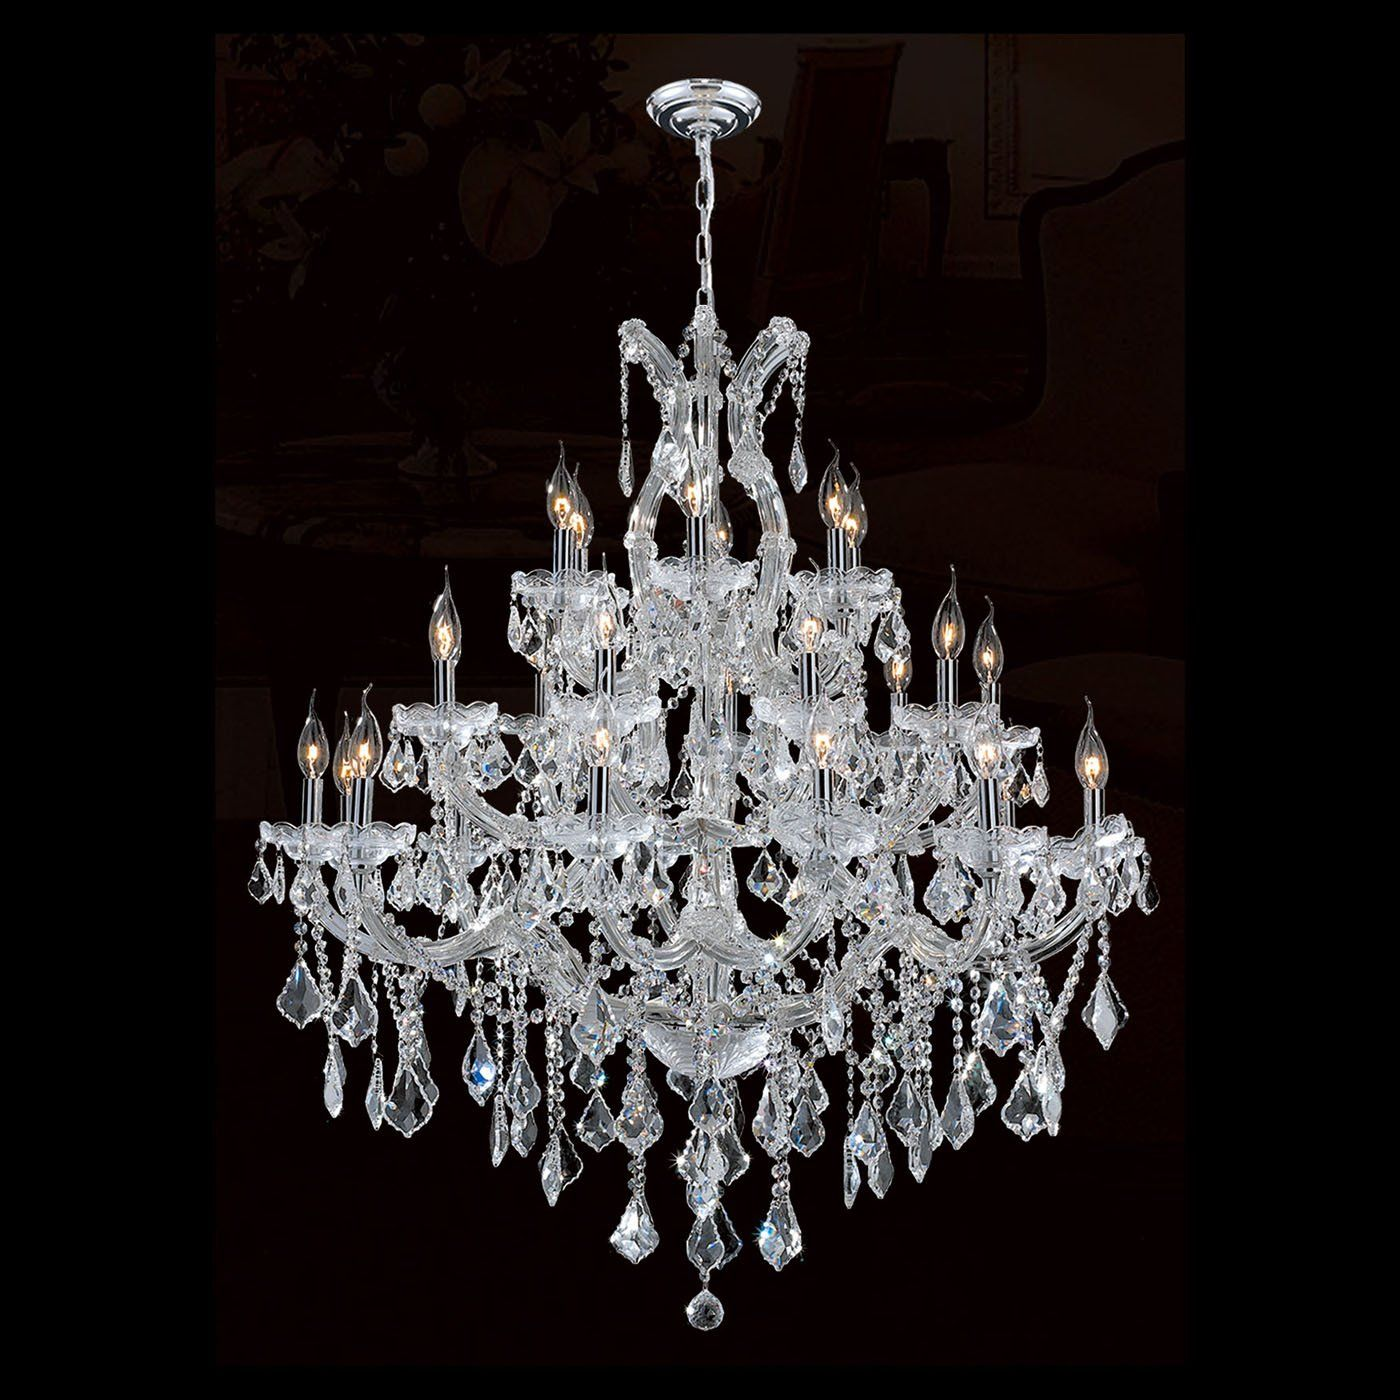 Worldwide Lighting W83003c38 30 Light Maria Theresa Large Chandelier